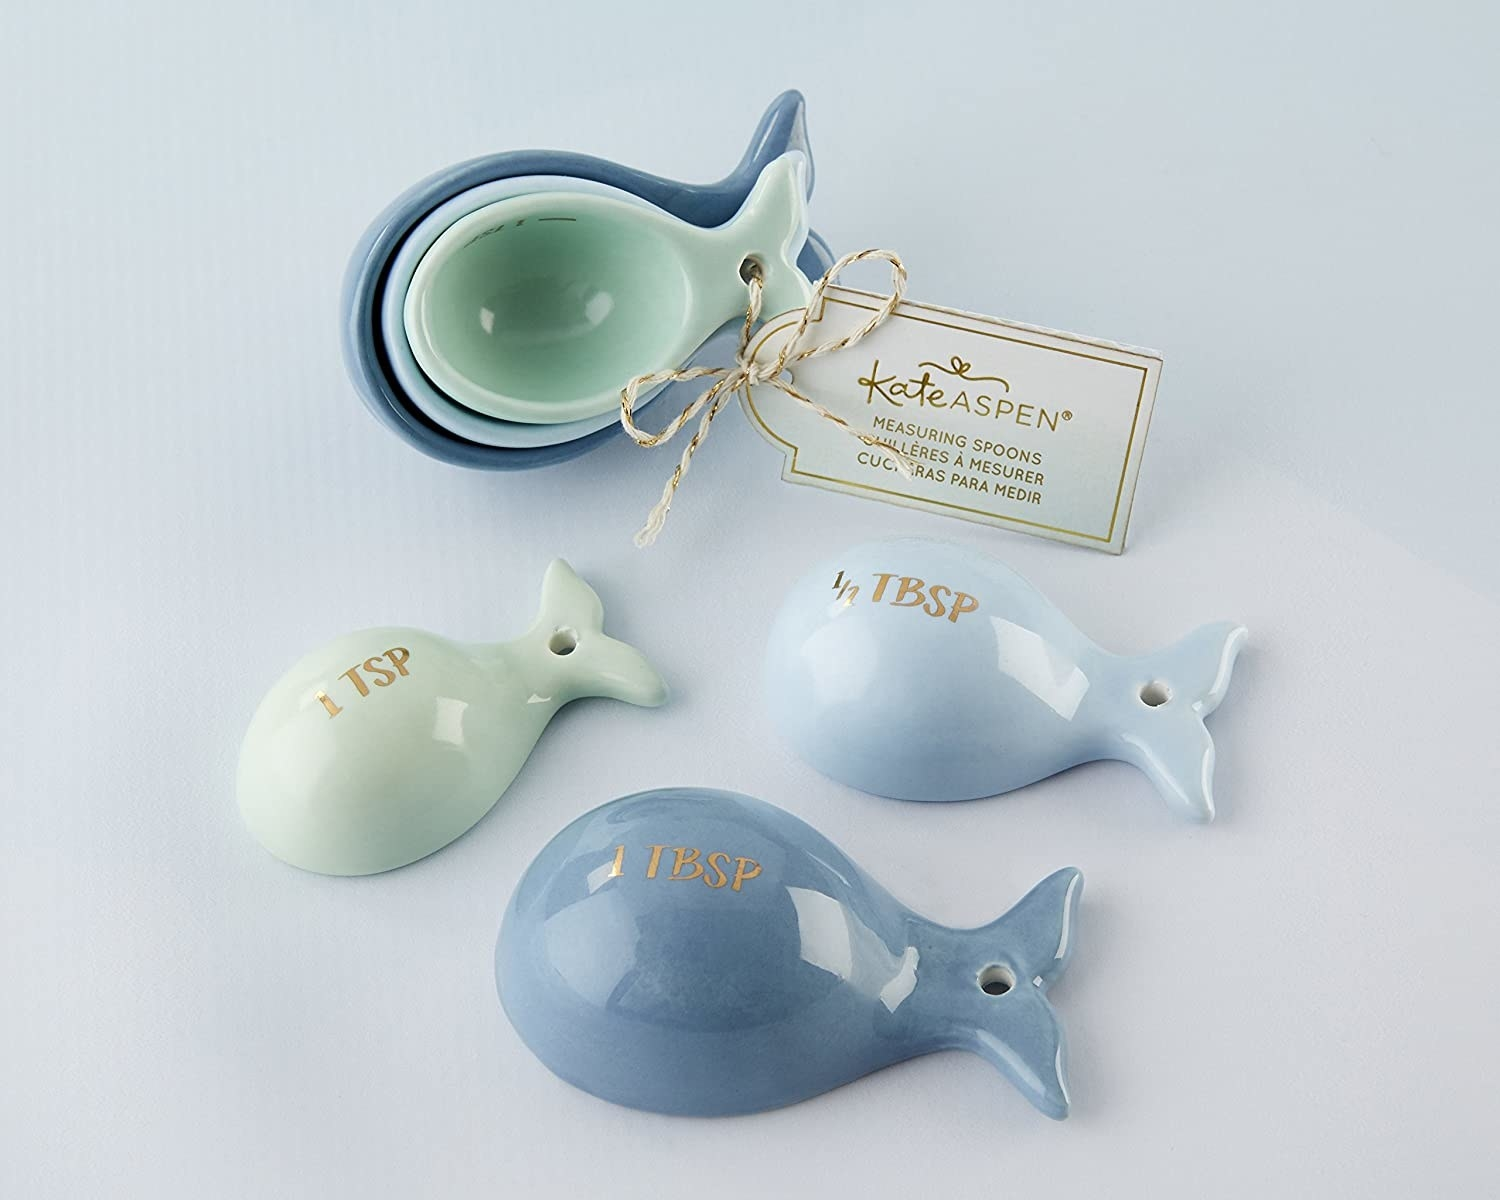 A trio of whale-shaped measuring spoons with gold foil labelling